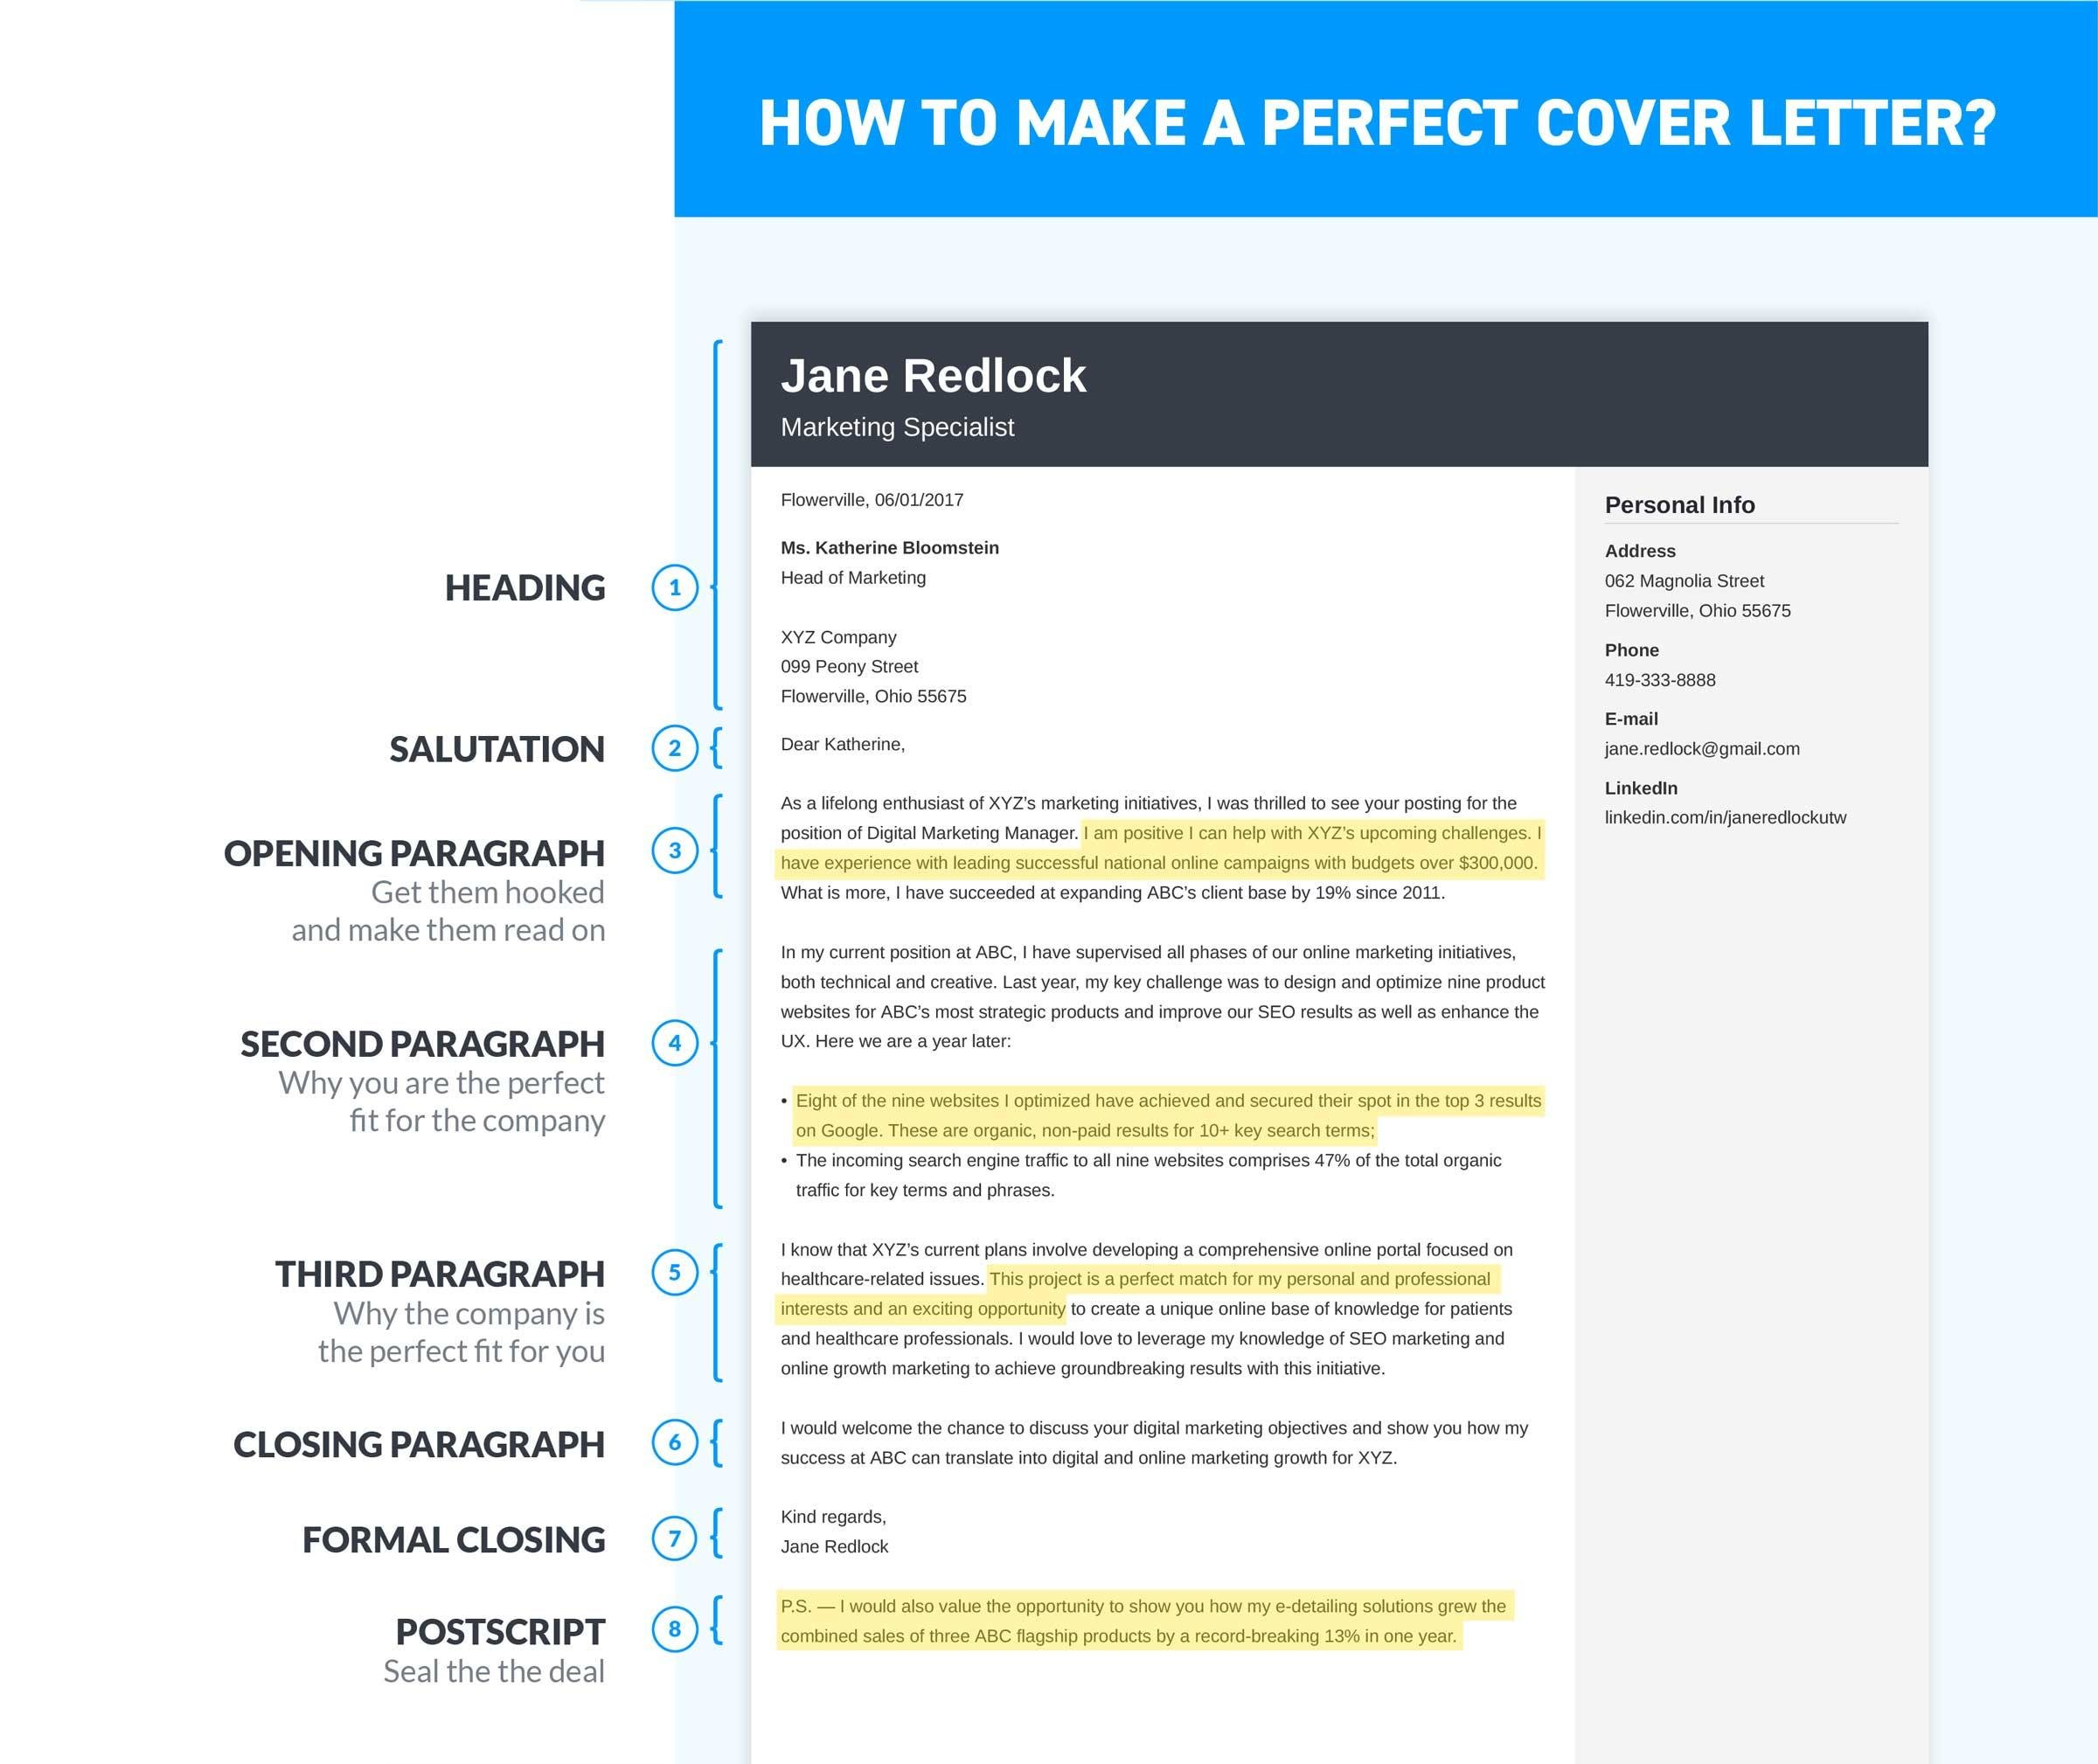 How To Write A Cover Letter In 8 Simple Steps (12+ Examples